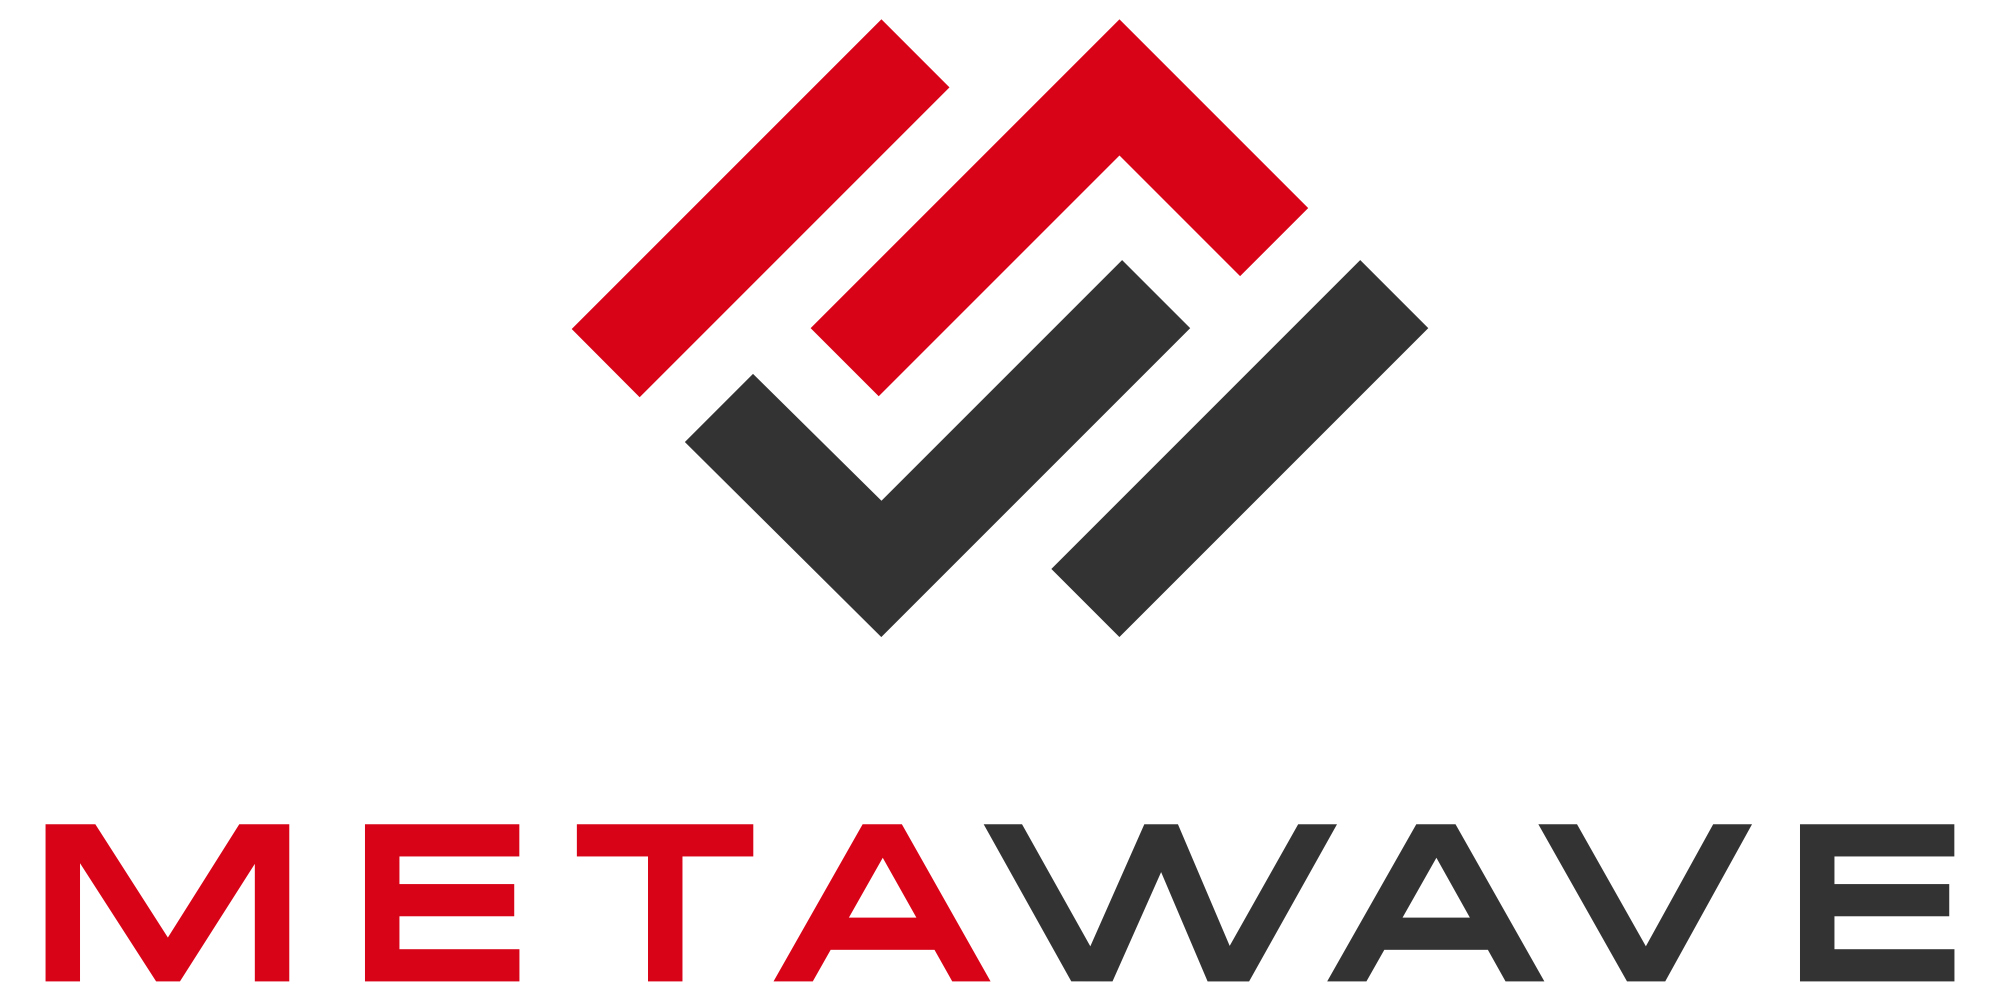 Metawave Corporation